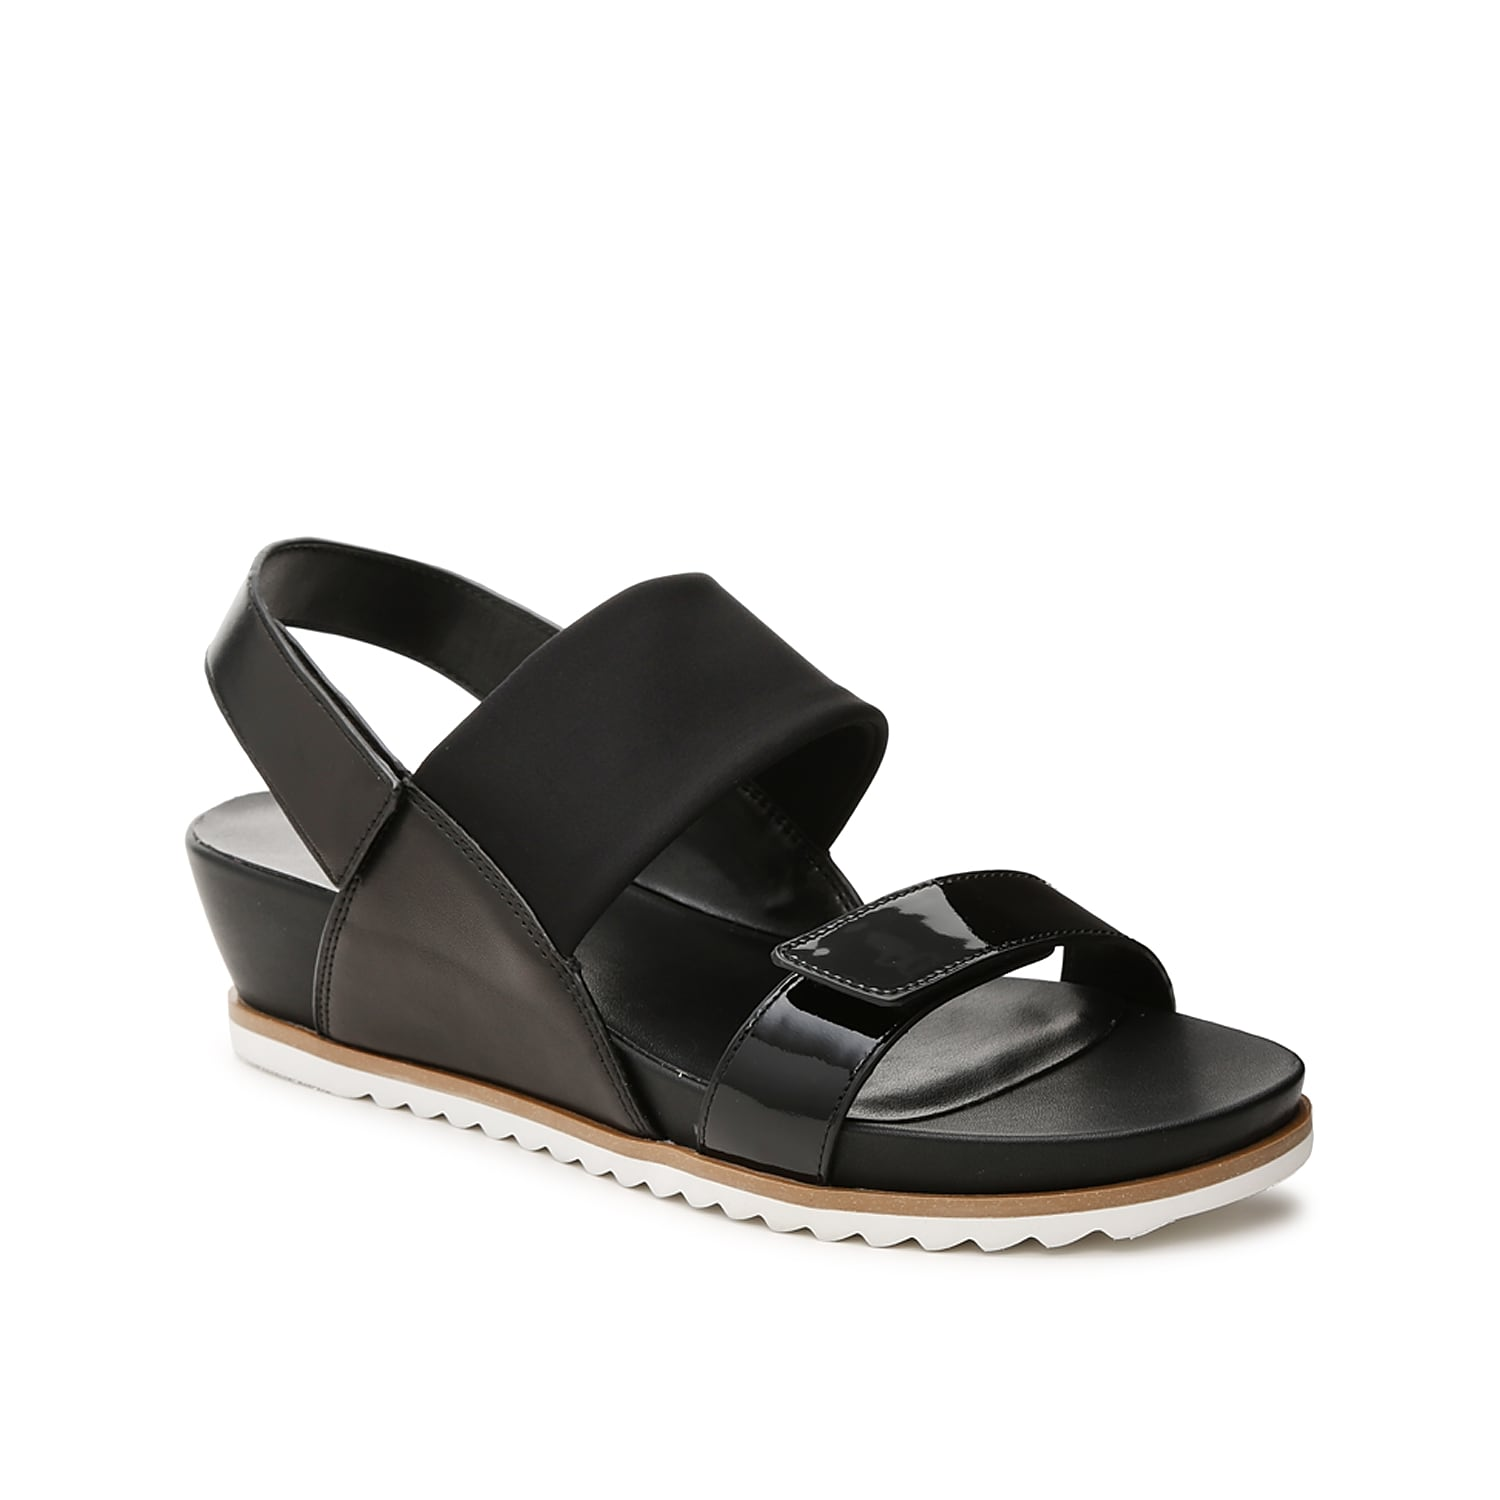 The Hayley wedge sandal from VANELi is easy to pair with anything from dresses to capris. A cushioned footbed keeps you comfortable while the hook and loop straps offer a custom fit.